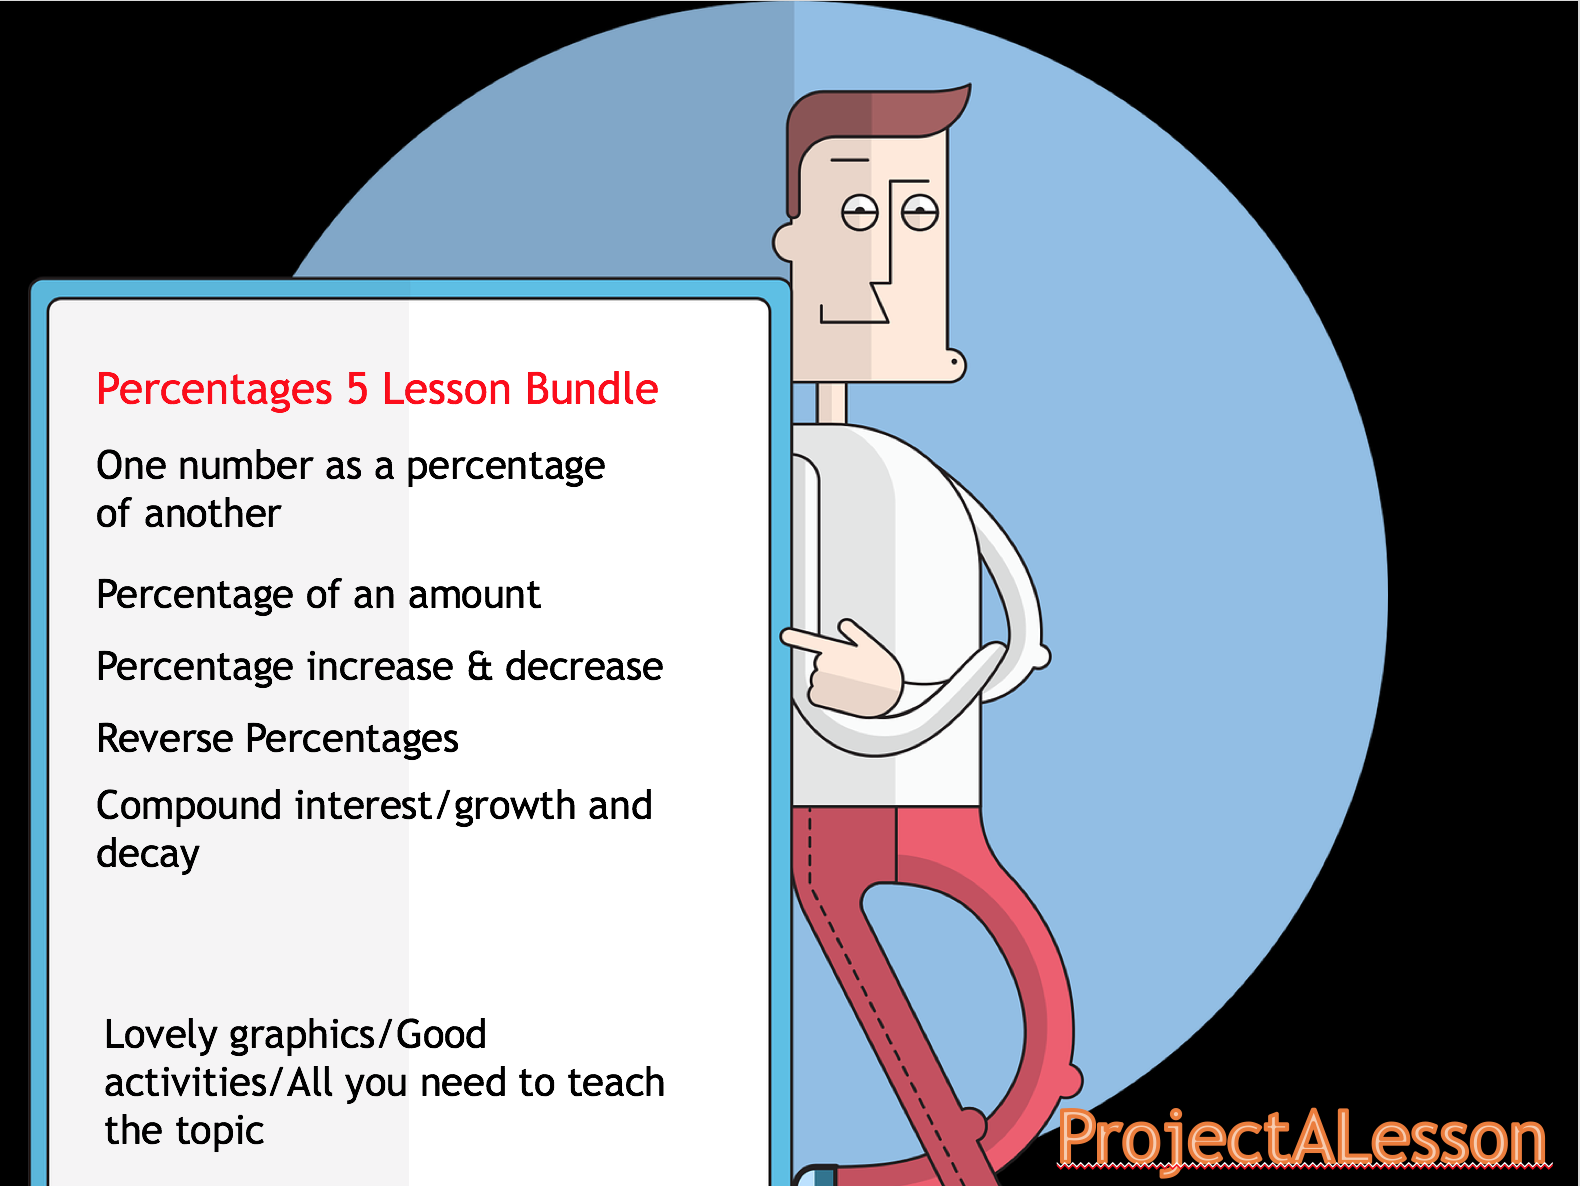 ProjectALesson Bundle: Percentages